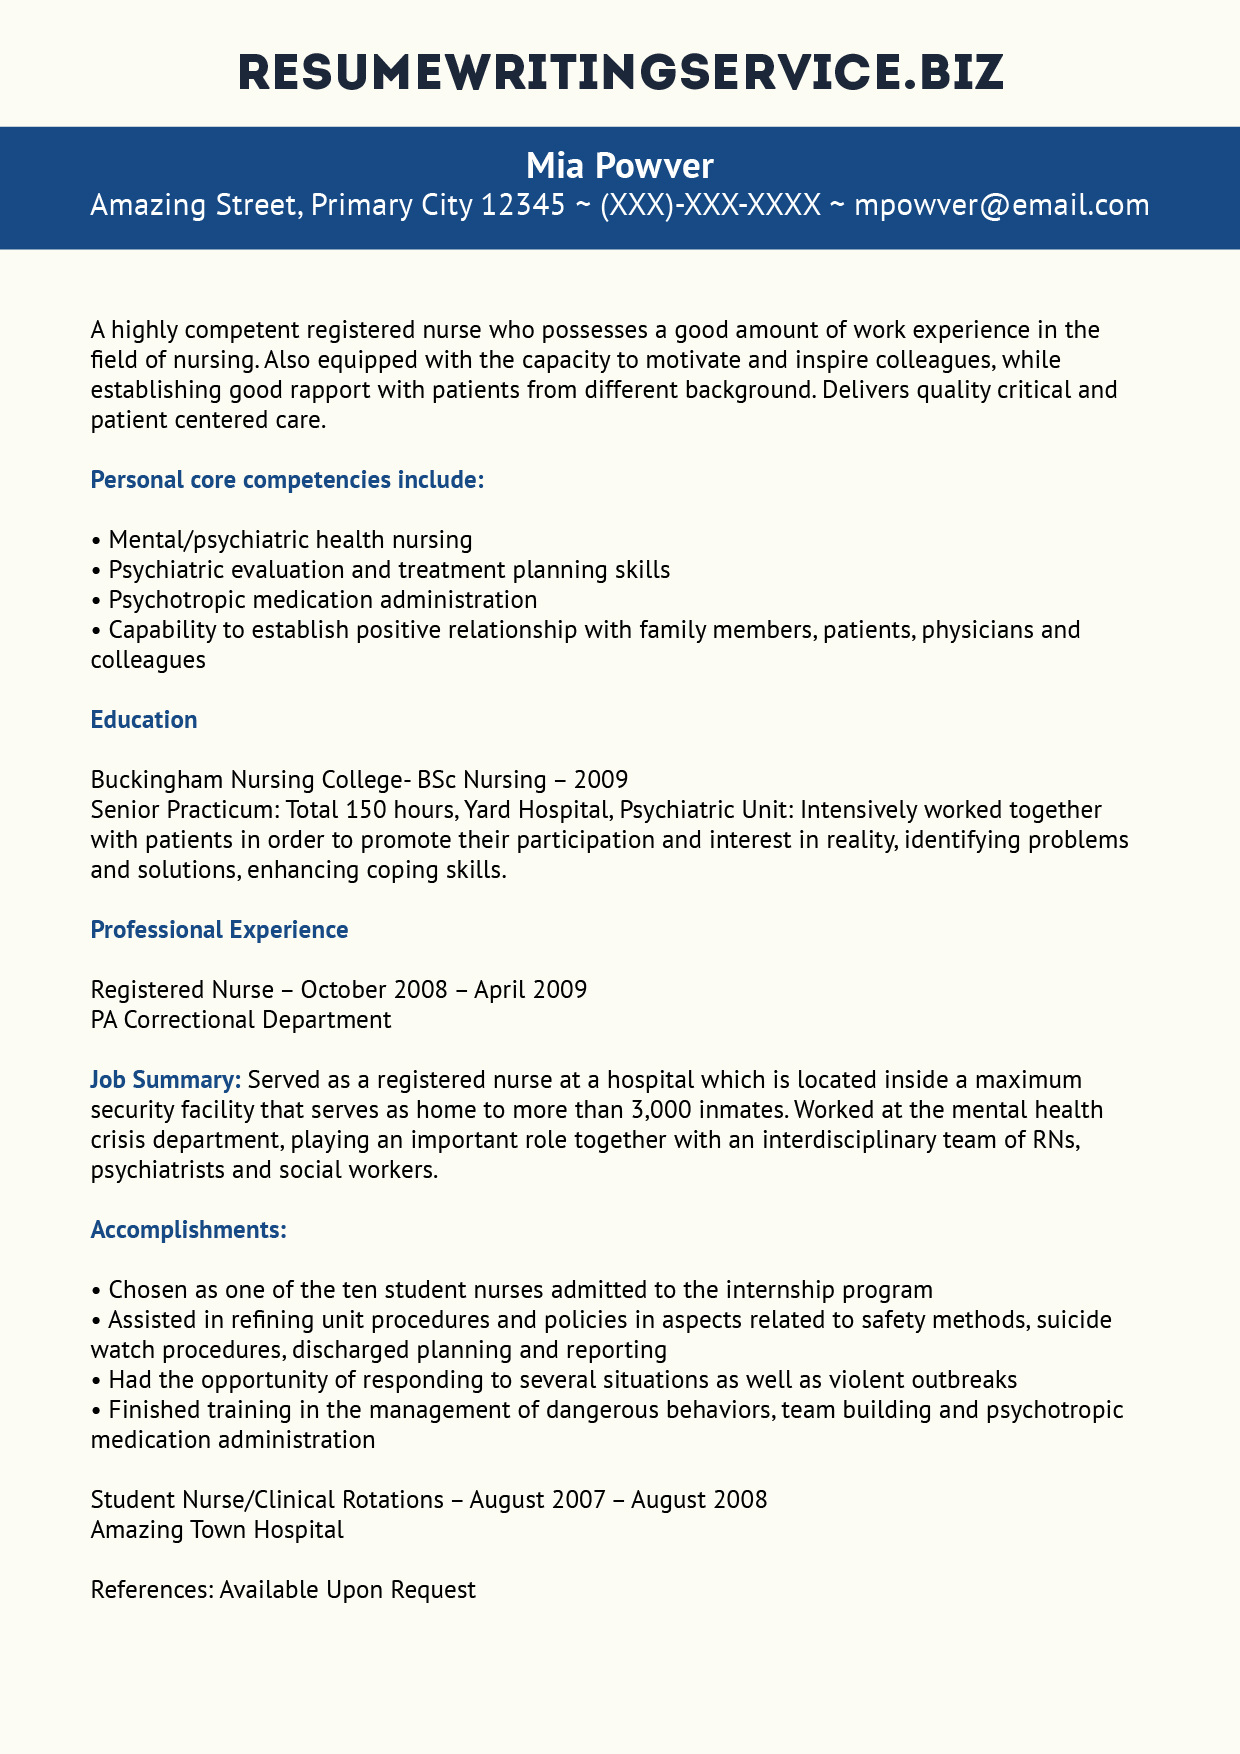 careerperfect healthcare nursing sample resume